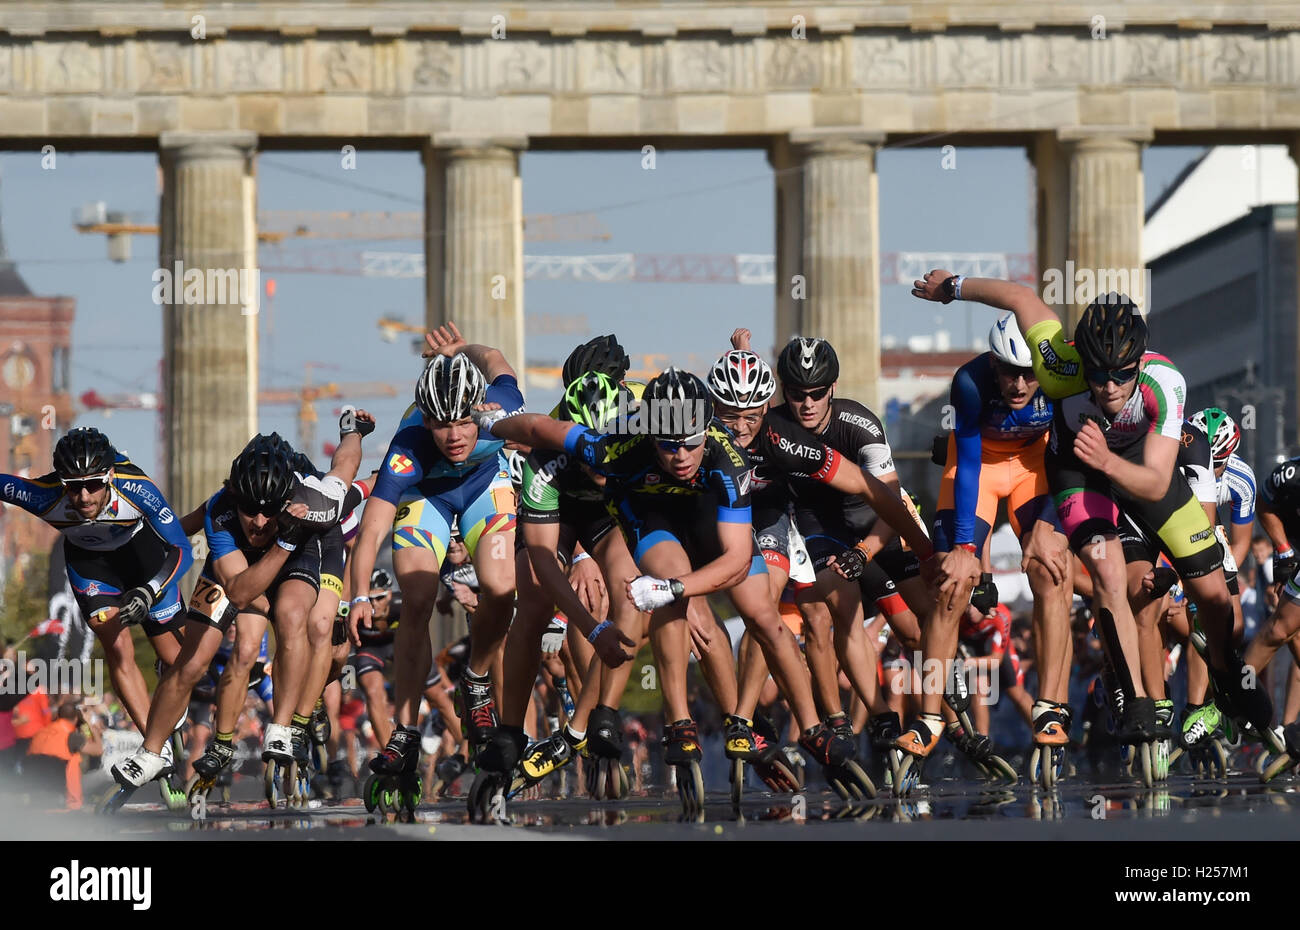 Berlin, Germany. 24th Sep, 2016. Numerous in-line skaters sprint towards the finish line during the in-line skating competition at the 43rd Berlin Marathon in Berlin, Germany, 24 September 2016. Photo: KLAUS-DIETMAR GABBERT/dpa/Alamy Live News Stock Photo